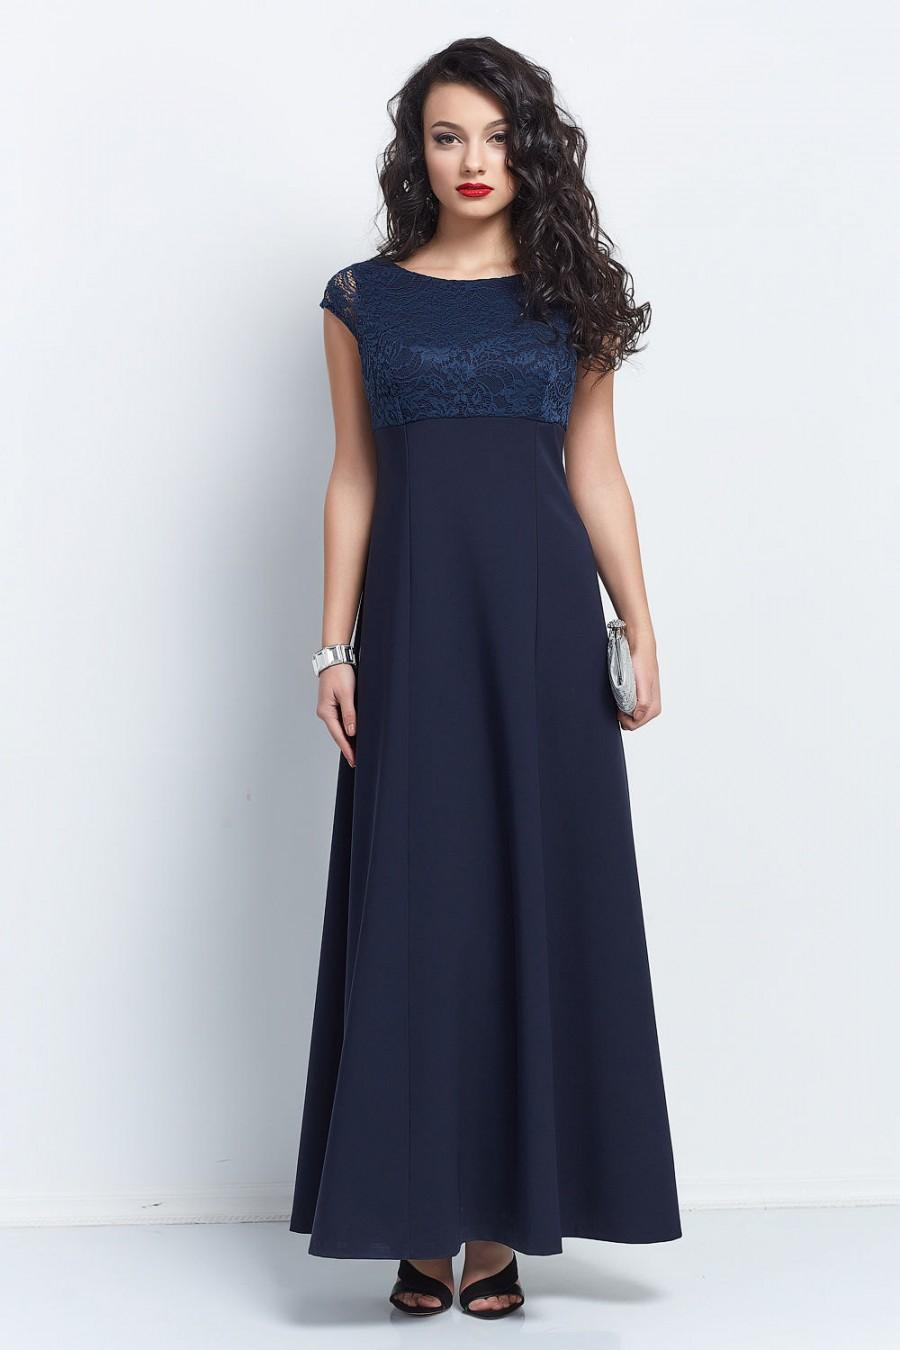 Look - Navy long blue bridesmaid dresses with sleeves video